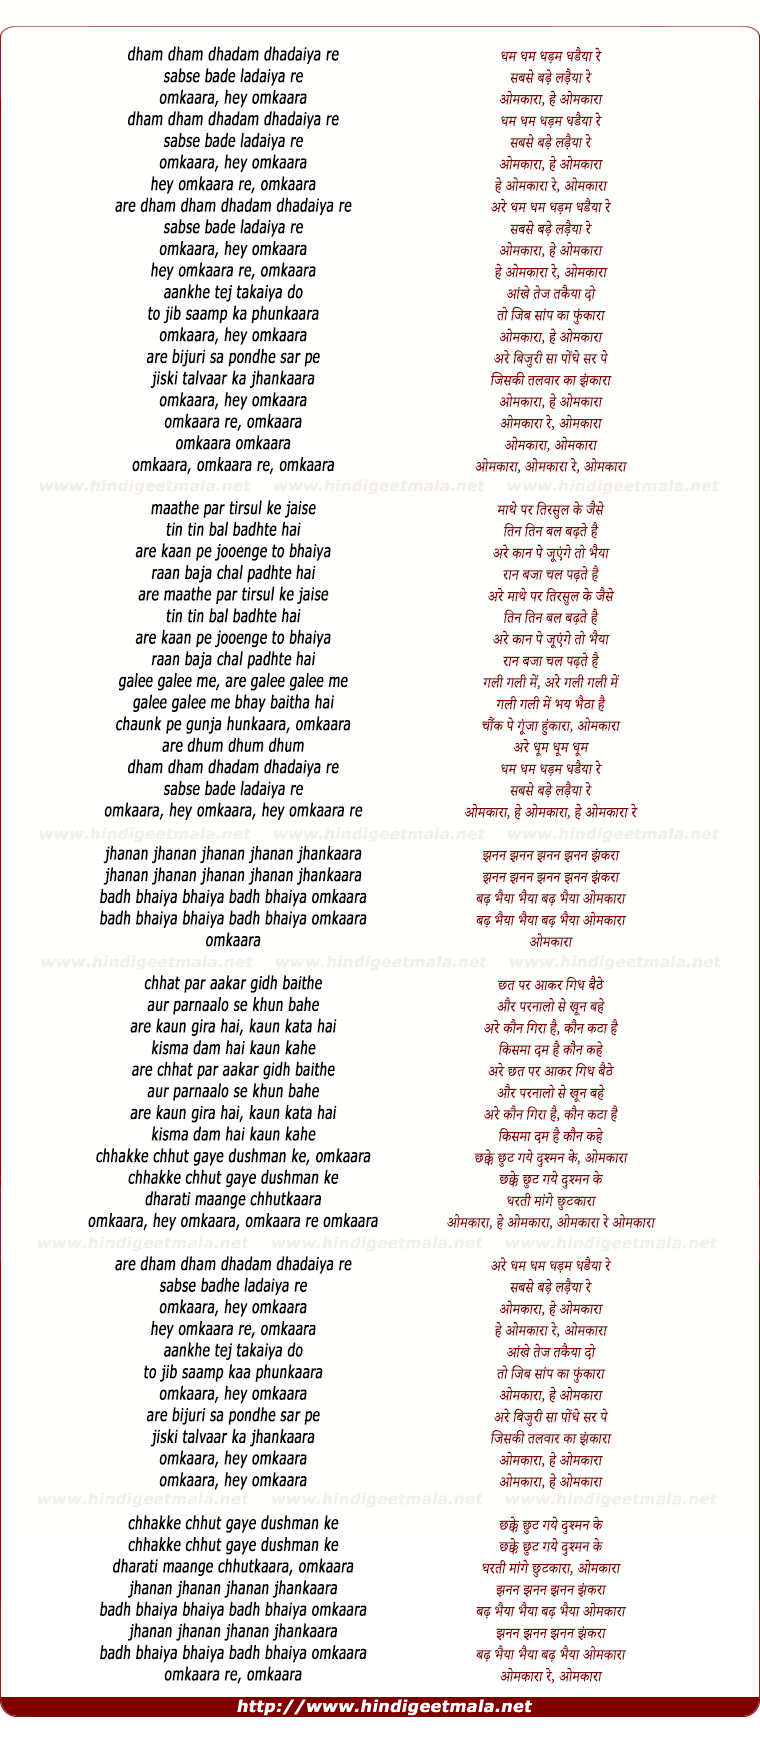 lyrics of song Dham Dham Dhadam Dhadaiya Re, Sabse Bade Ladaiya Re